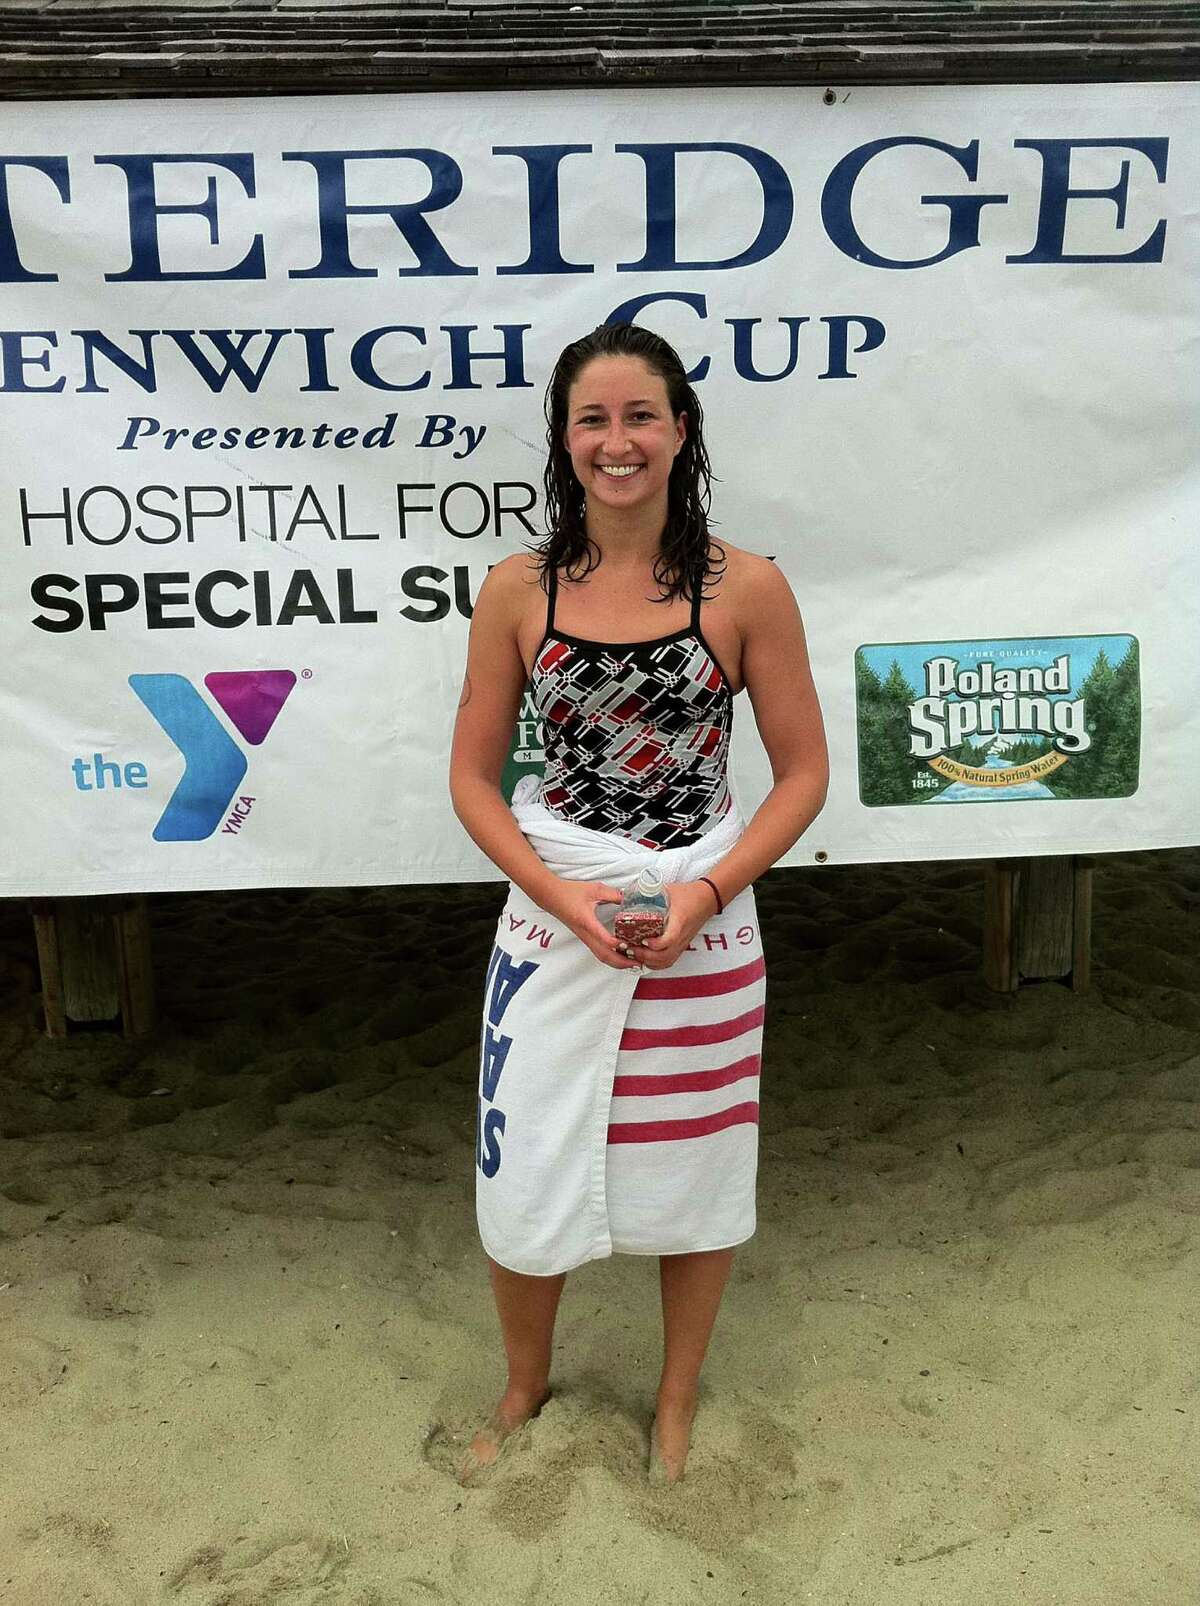 Danielle Honrath, a Monroe native, was the overall woman's champion of the Greenwich Point One-Mile Swim on Saturday. She finished the race in 16 minutes, 59 seconds.